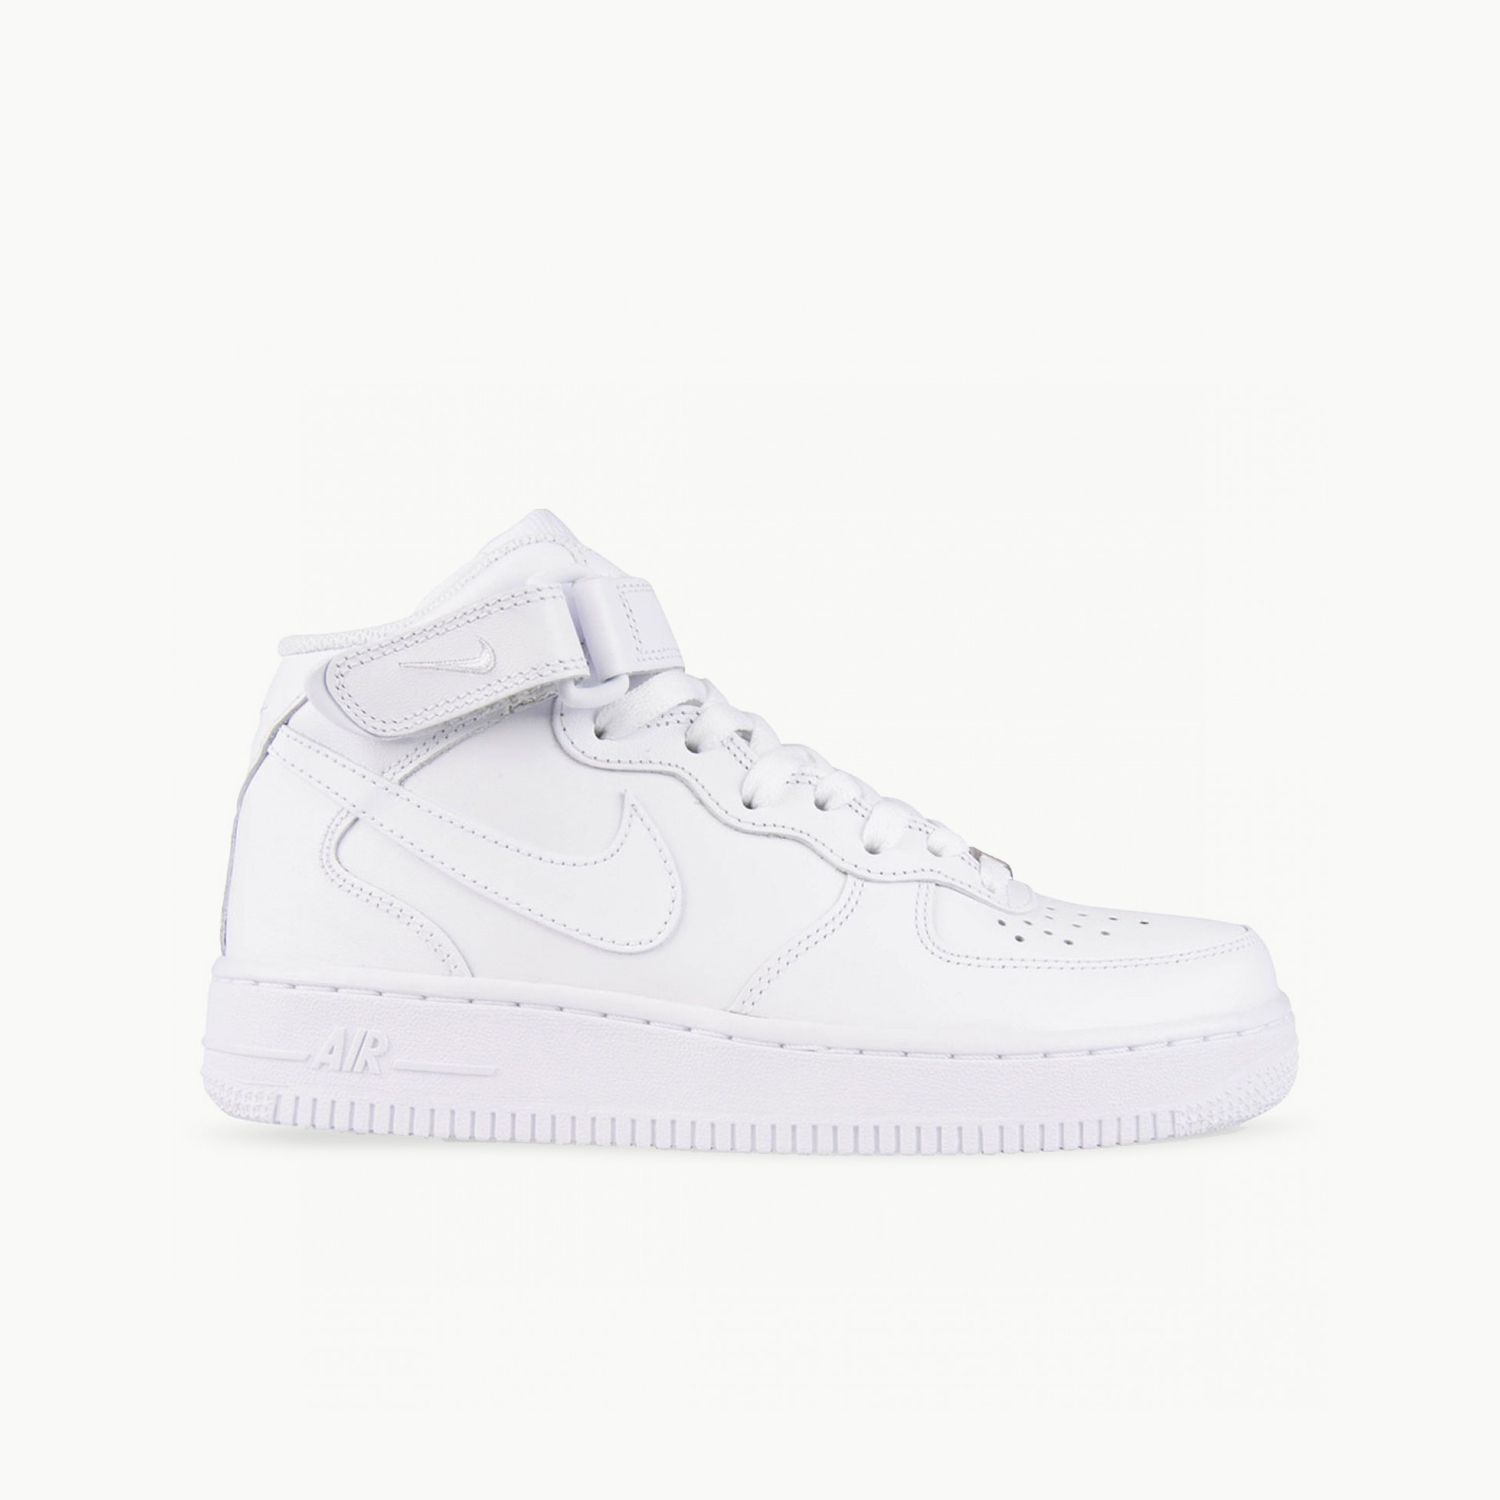 size 40 cdab4 84c04 ... sweden nike sportswear air force 1 mid available at hype dc 5060e a107e